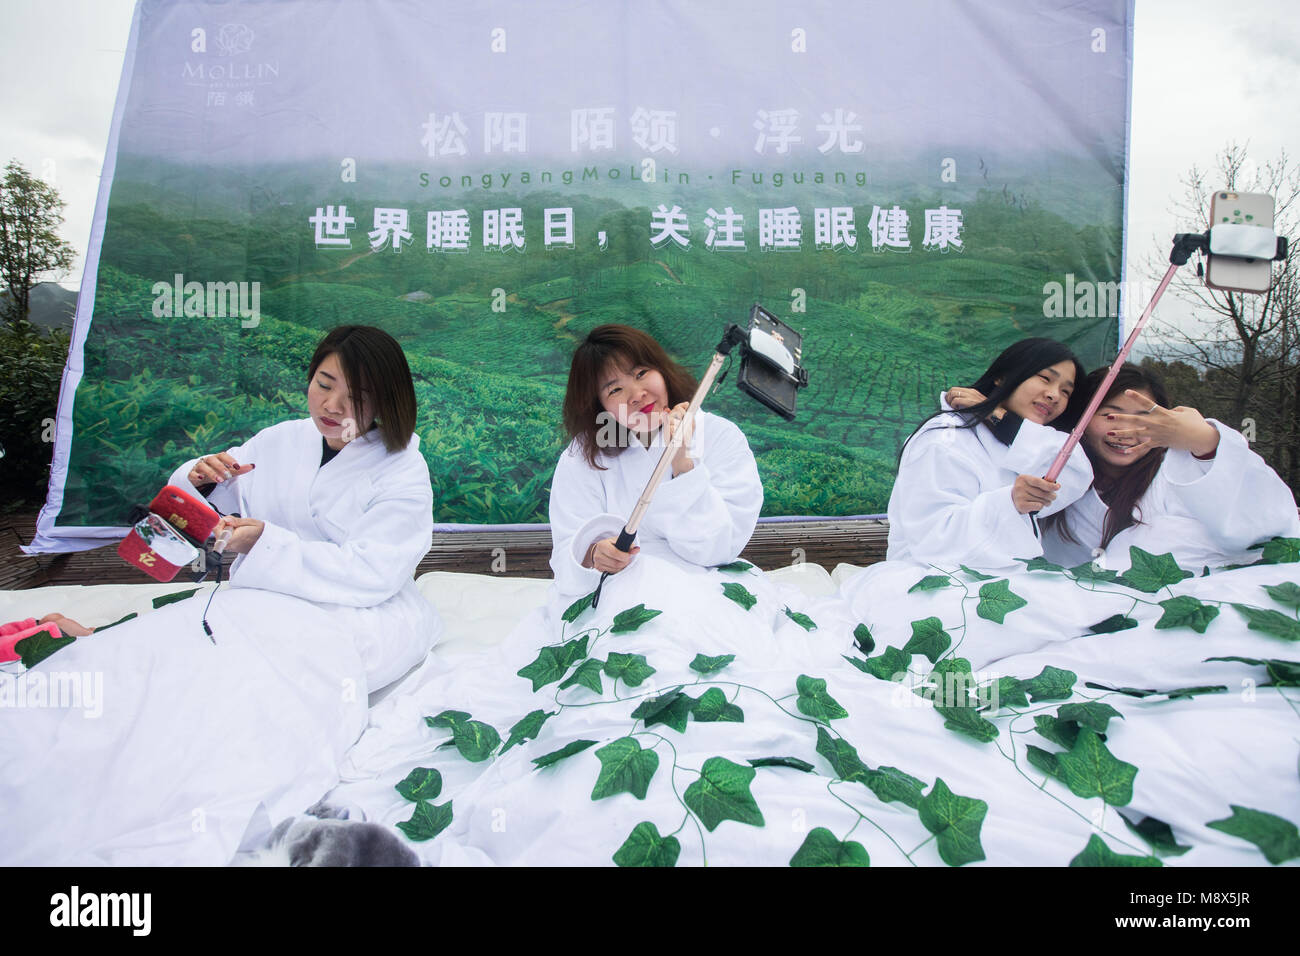 Lishui, Lishui, China. 21st Mar, 2018. People attend a live stream ...